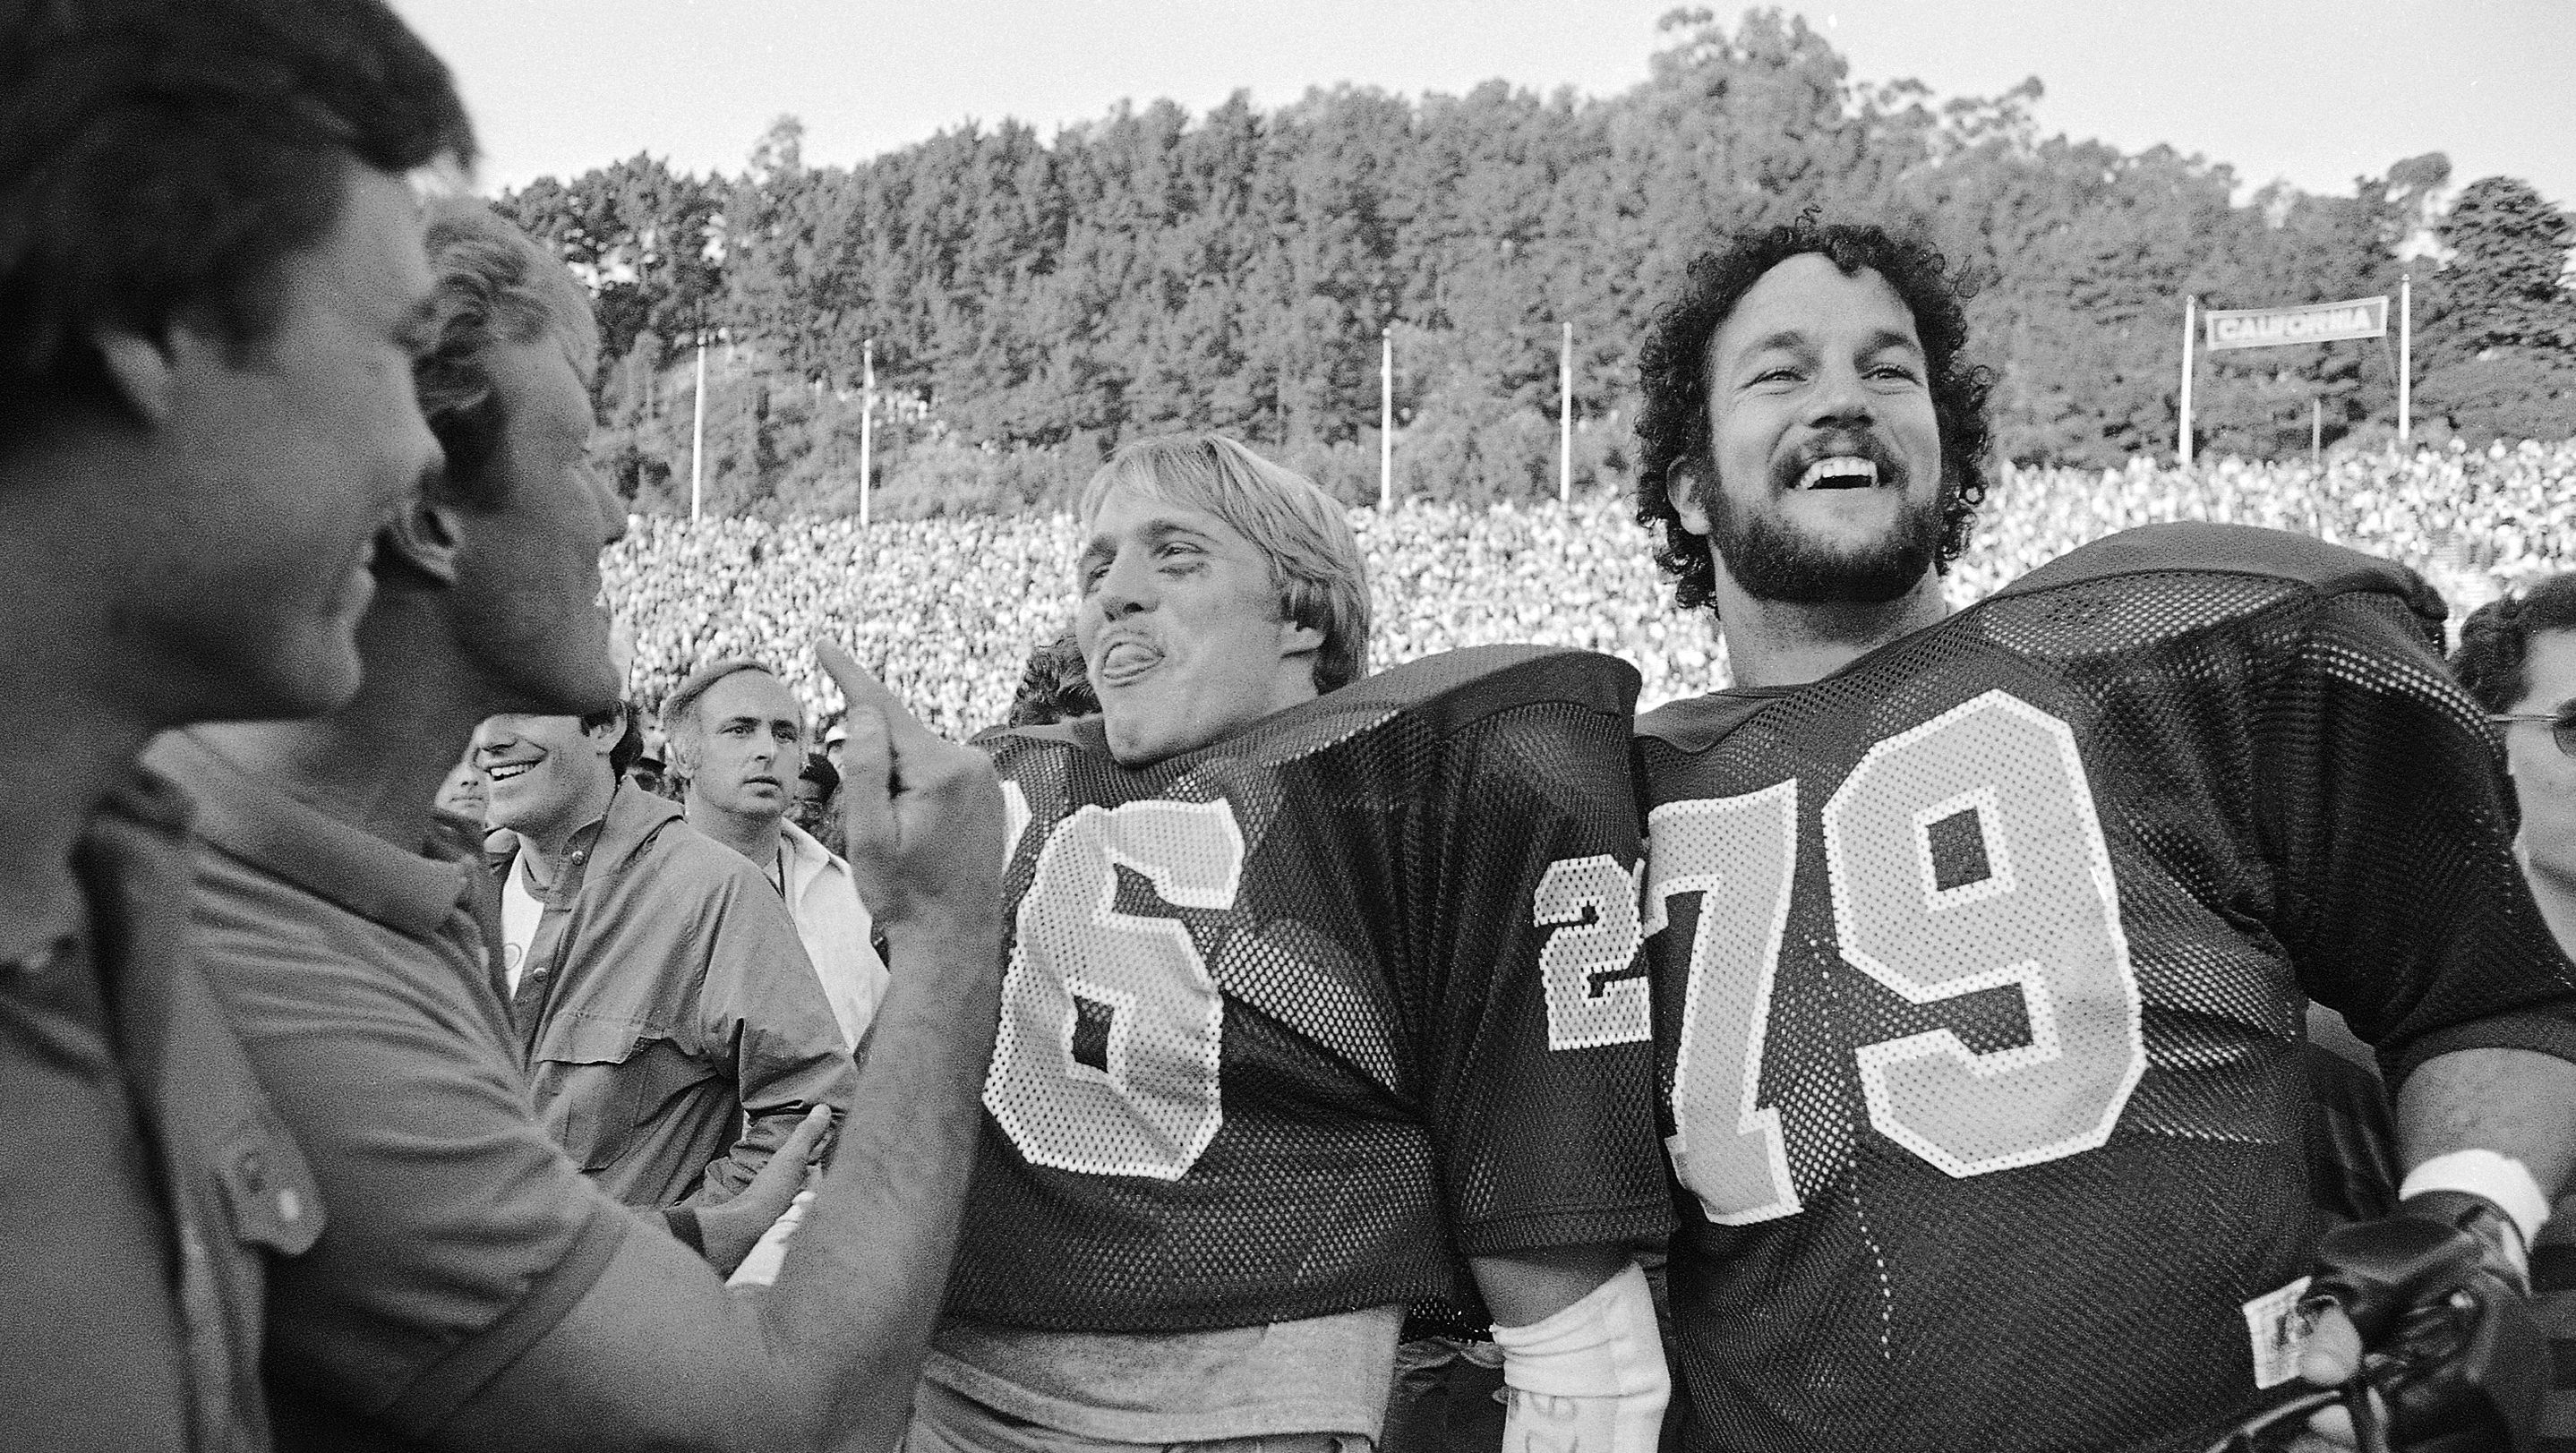 Cal's Kevin Moen center (26), and Keith Kartz (79) are all smiles after Cal defeated Stanford, 25-20 on Nov. 20, 1982 in Berkeley. Cal?s Kevin Moen weaved his way through hundreds of people and scored a touchdown after time had run out to give Cal the win.